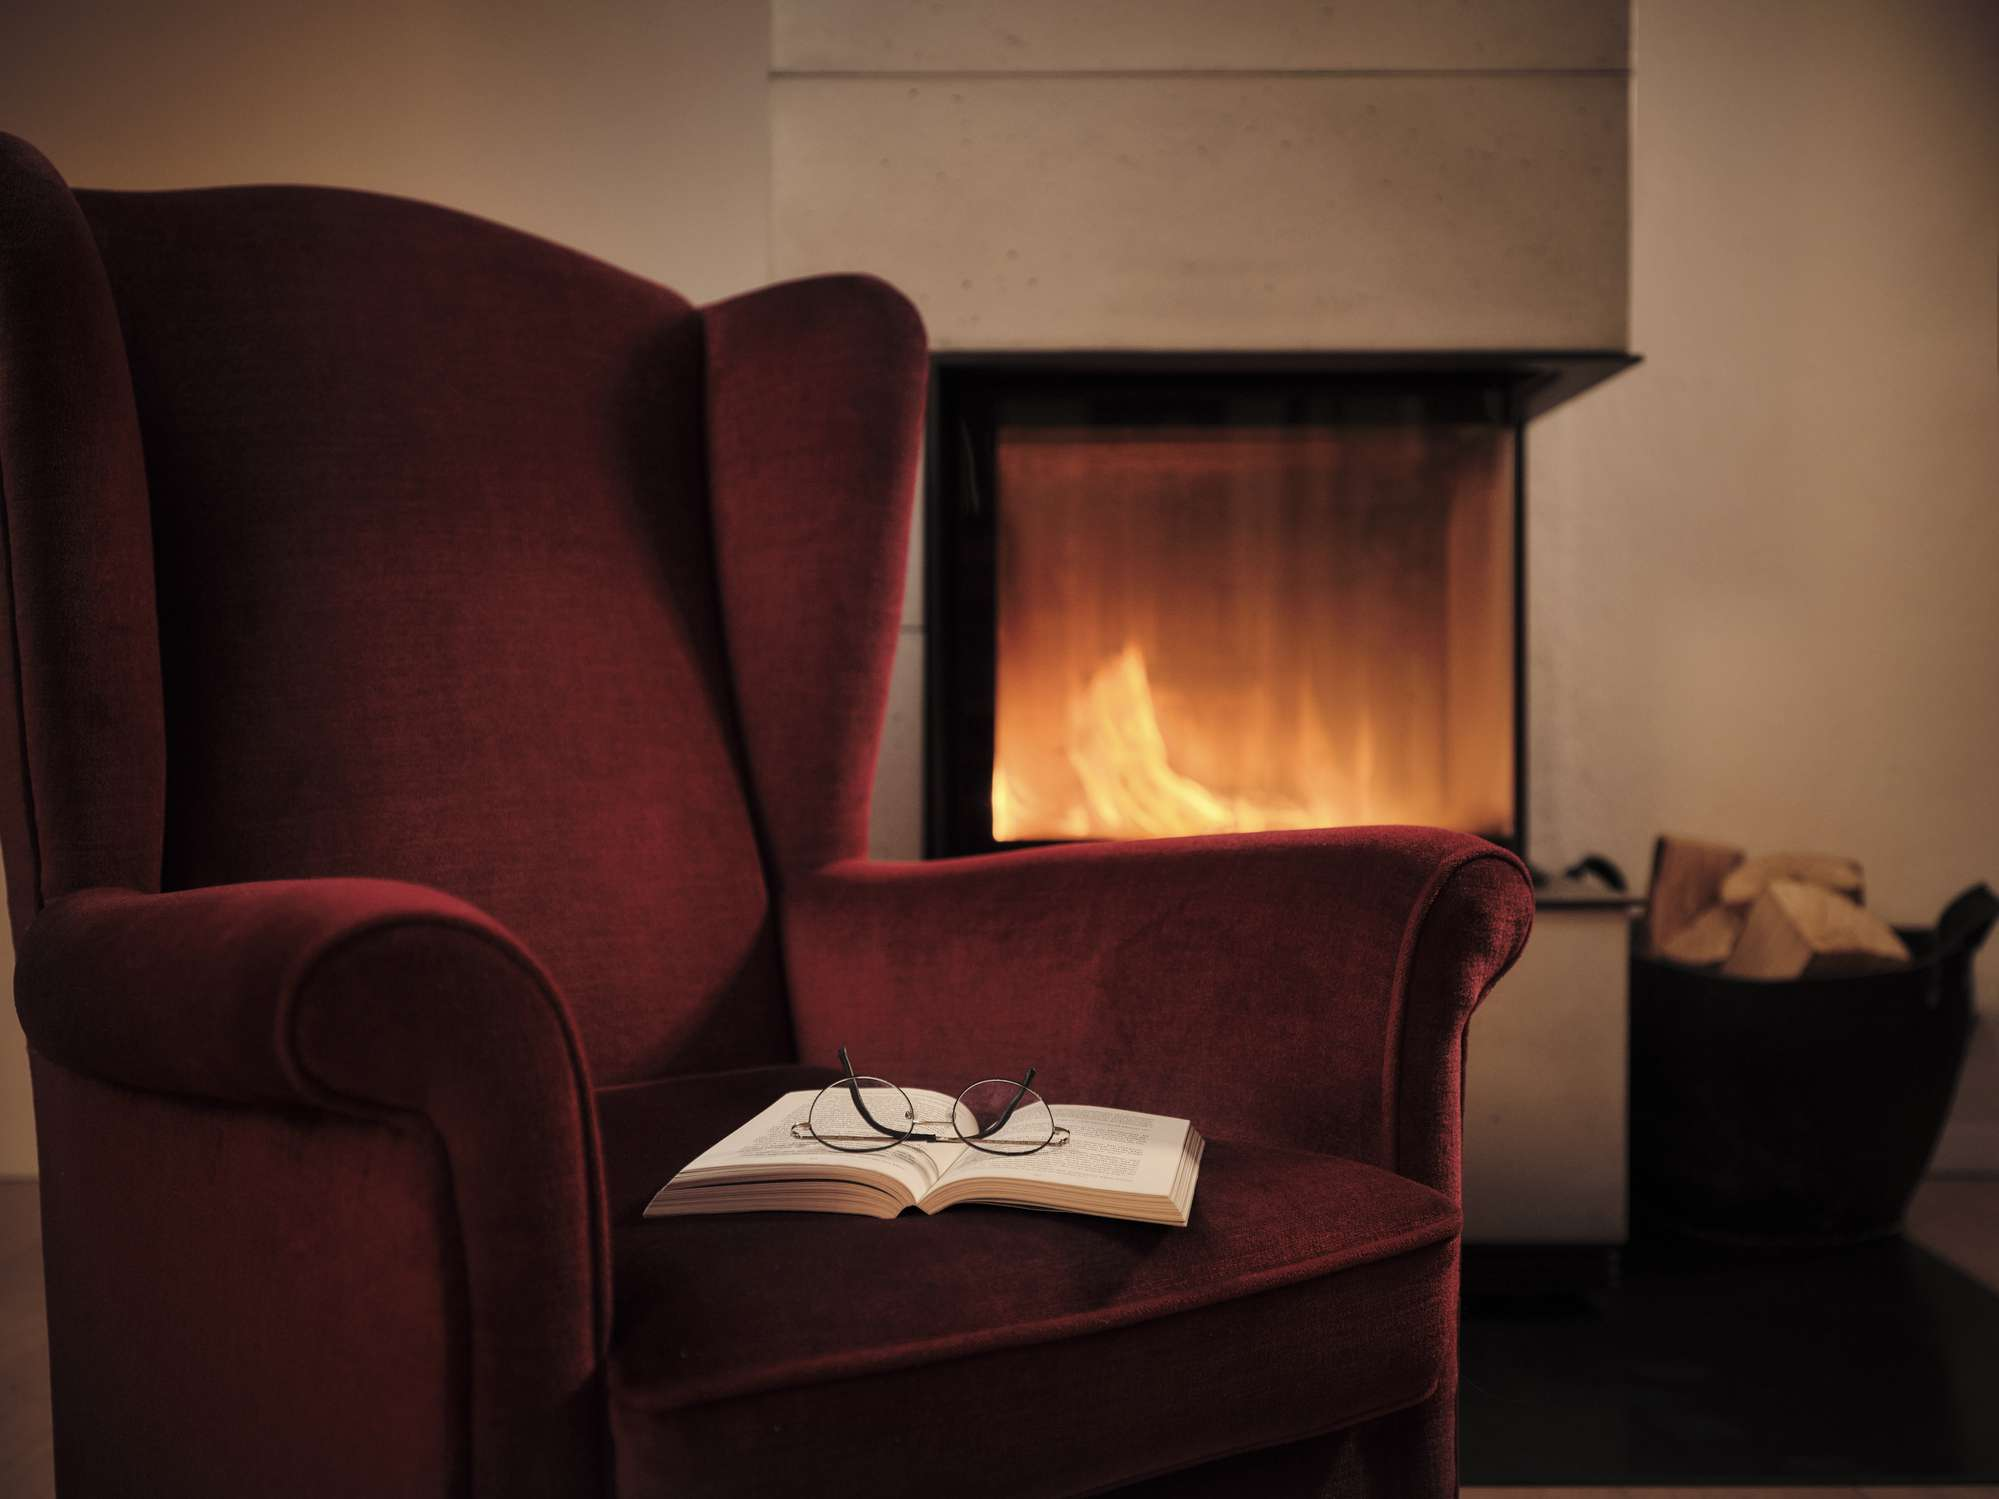 A wingback chair in front of a fireplace